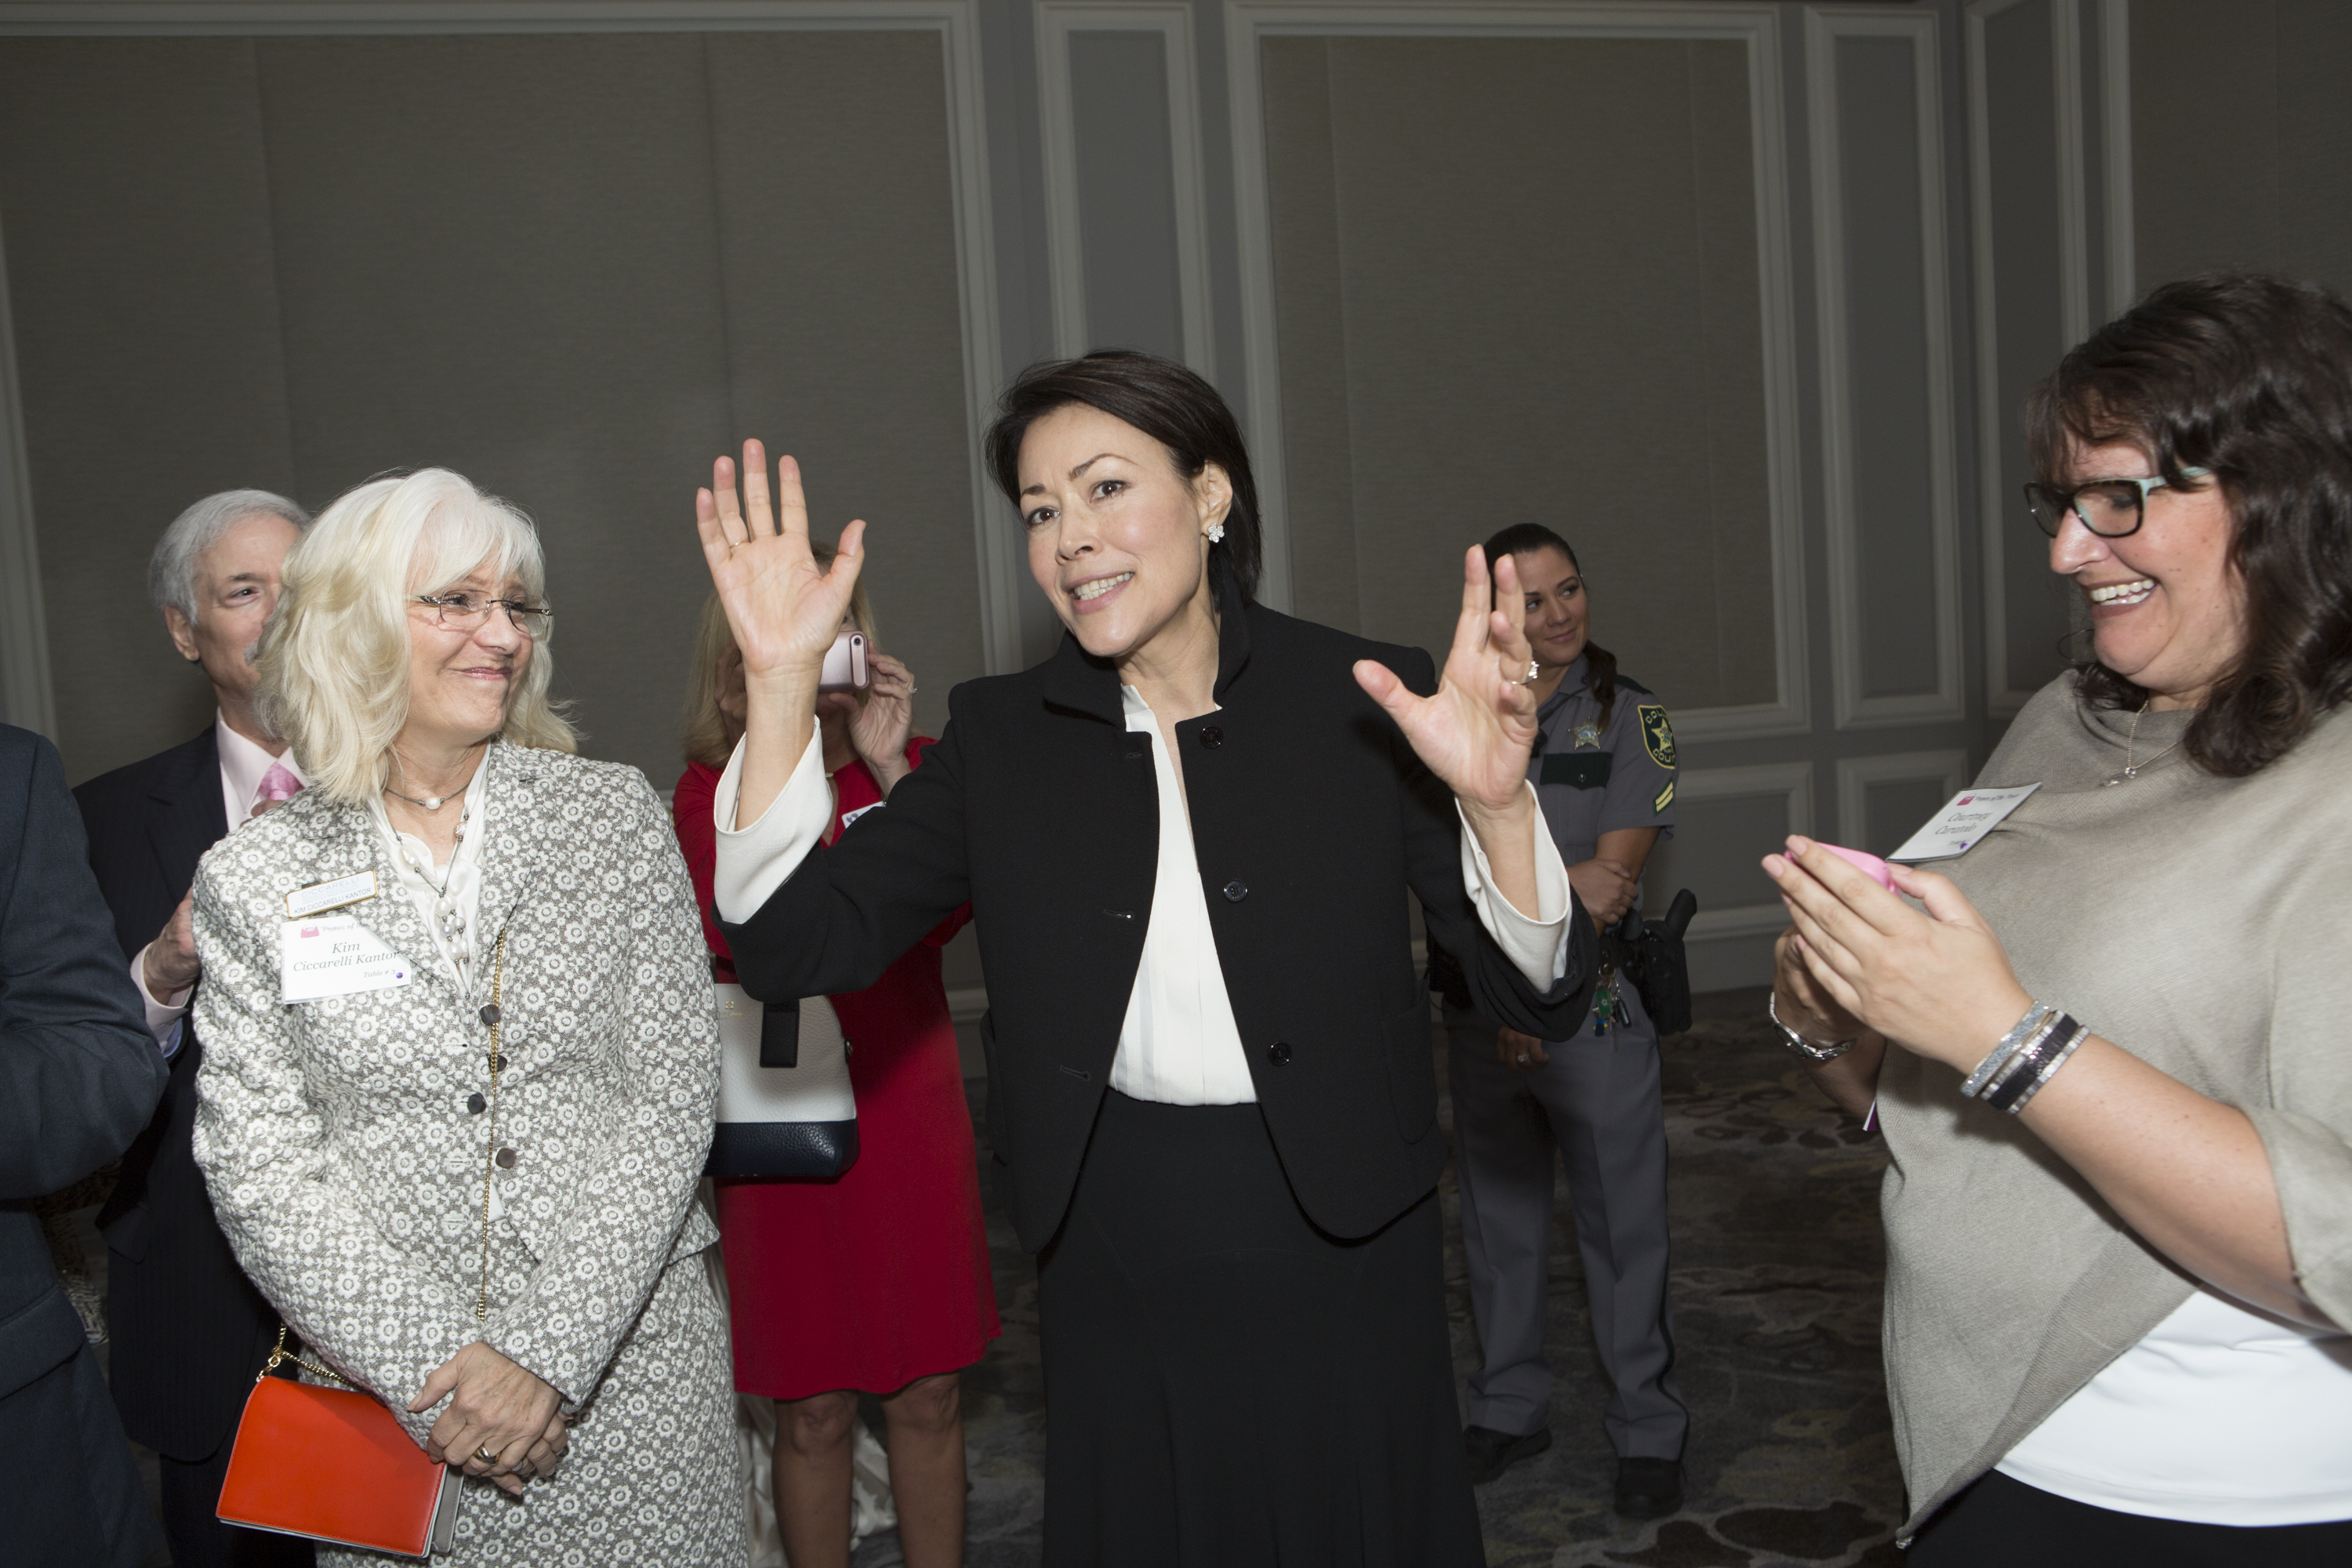 Ann Curry Reception #5